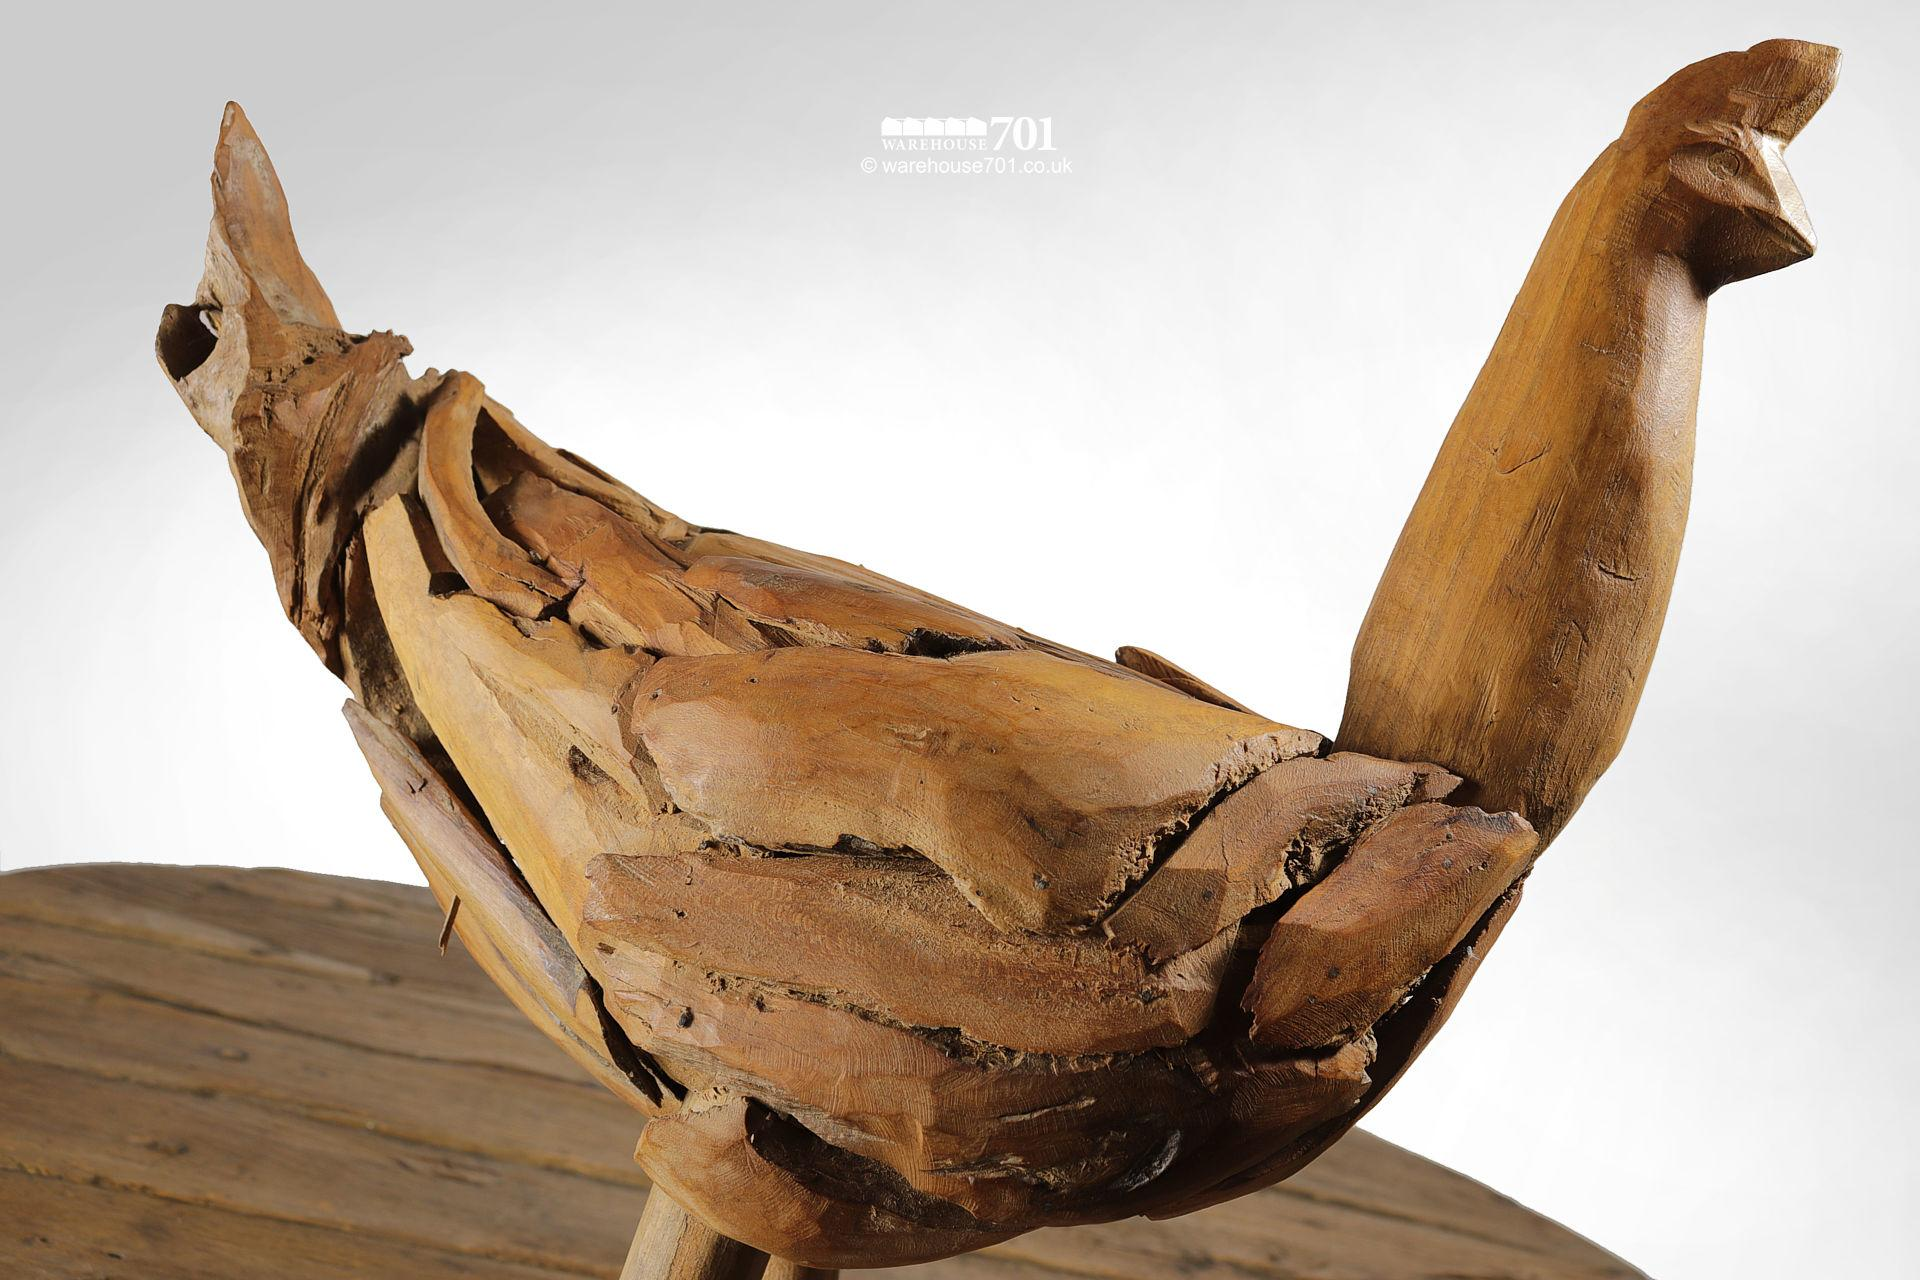 Reclaimed Drift Wood Style Sculpted Chicken, Cockerel or Rooster #4